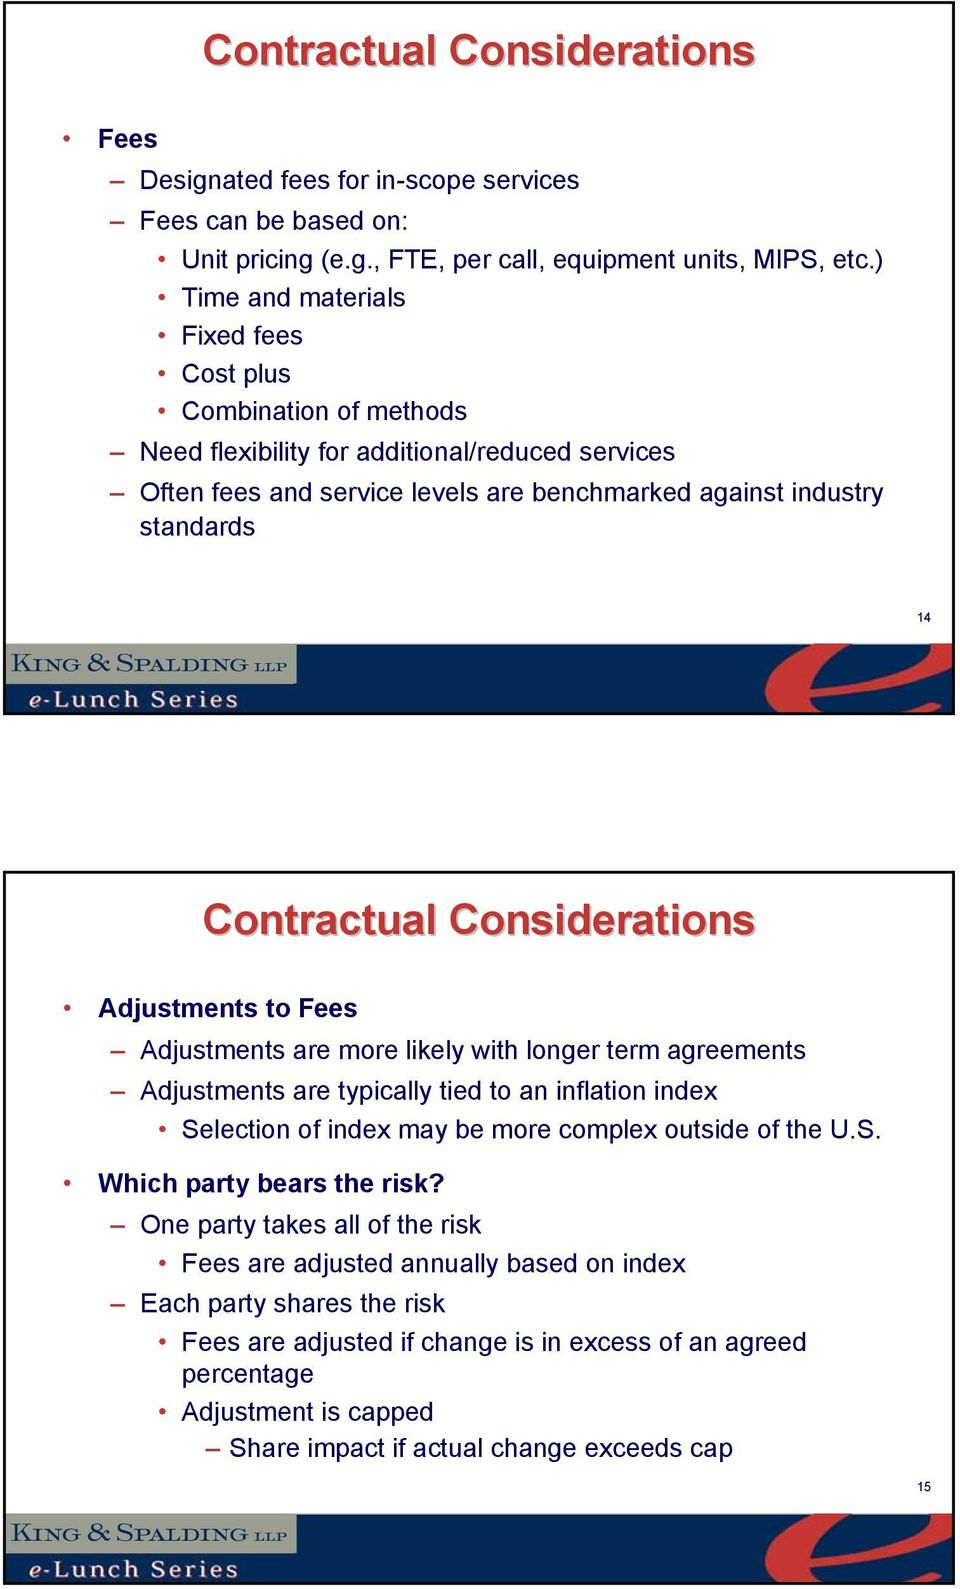 Contractual Considerations Adjustments to Fees Adjustments are more likely with longer term agreements Adjustments are typically tied to an inflation index Selection of index may be more complex